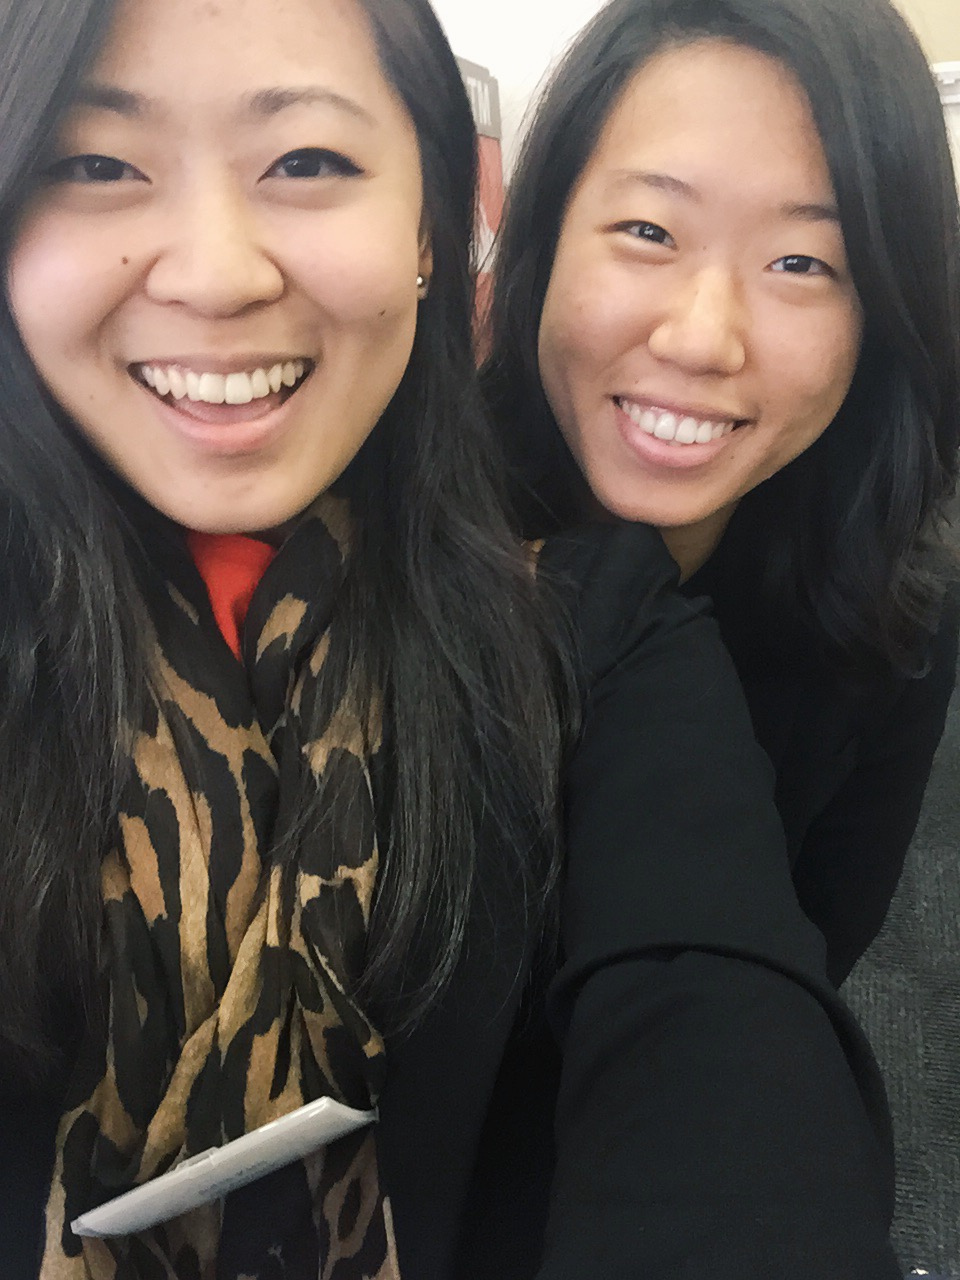 After graduation, this girl moved to New York and I stayed in DC. I was in New York one day for work,and we realized I was on the same block as where her office was located. We quickly met up for five minutes and took this photo.